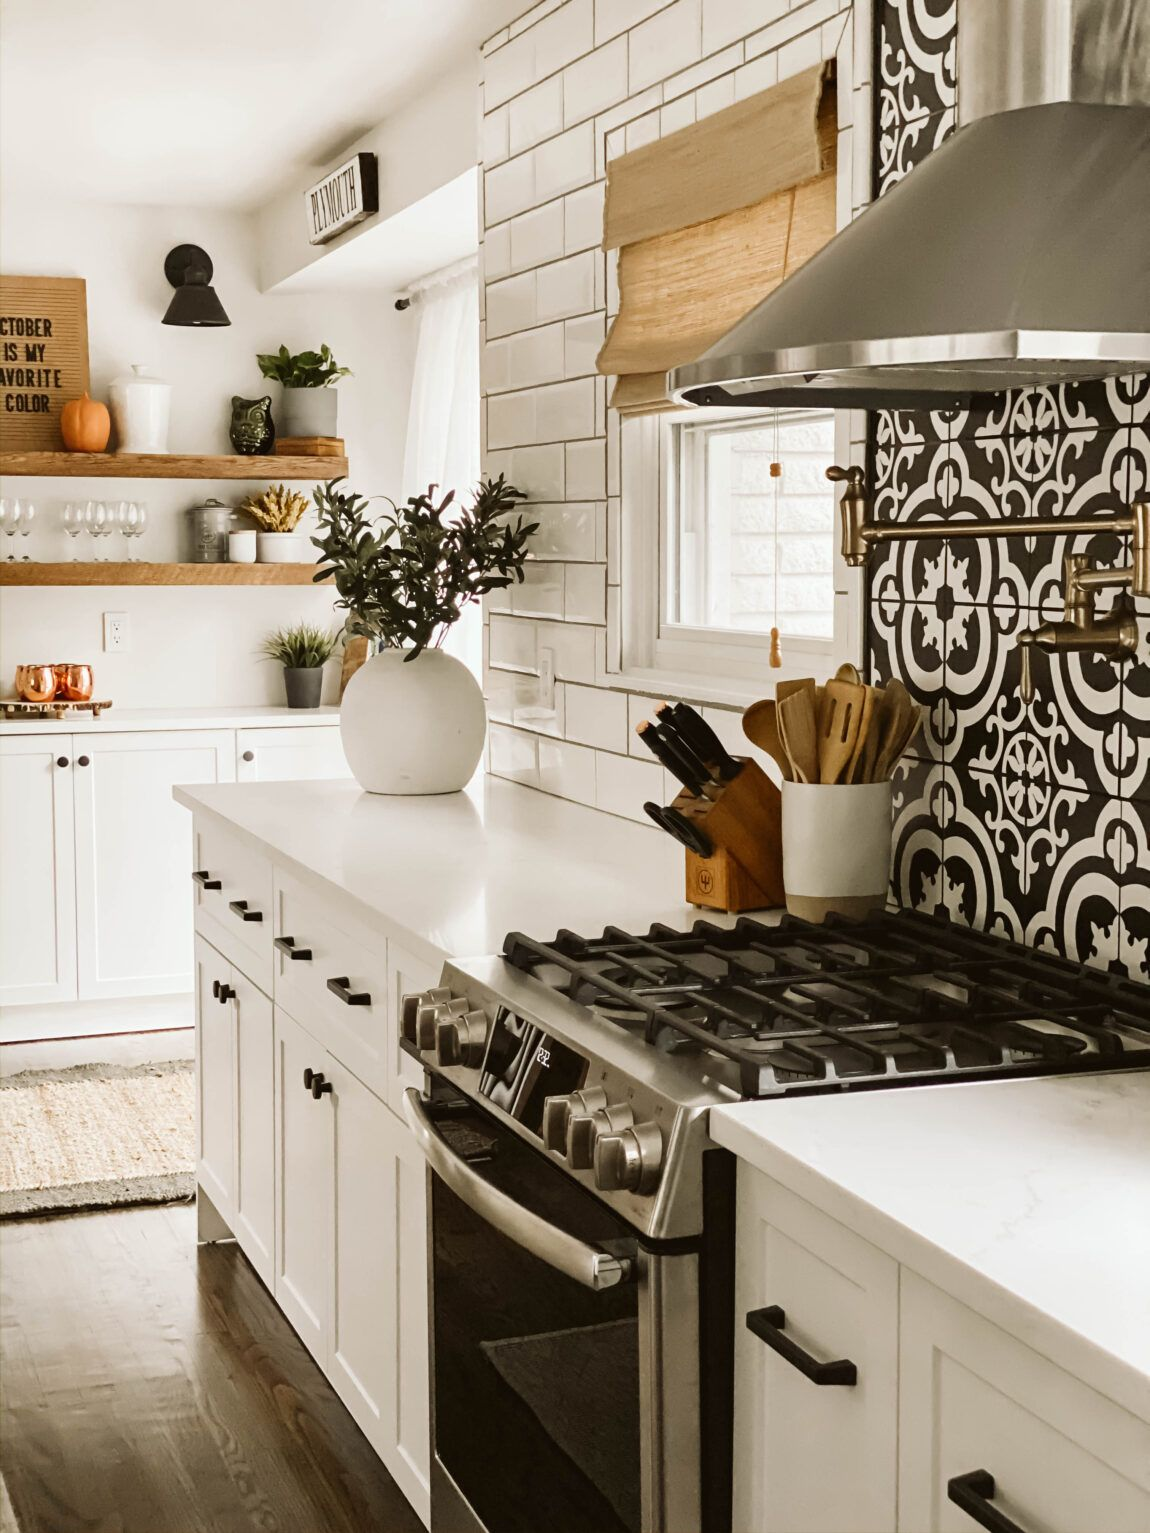 MODERN FARMHOUSE KITCHEN REVEAL // CRESTWOOD + MCKINLEY